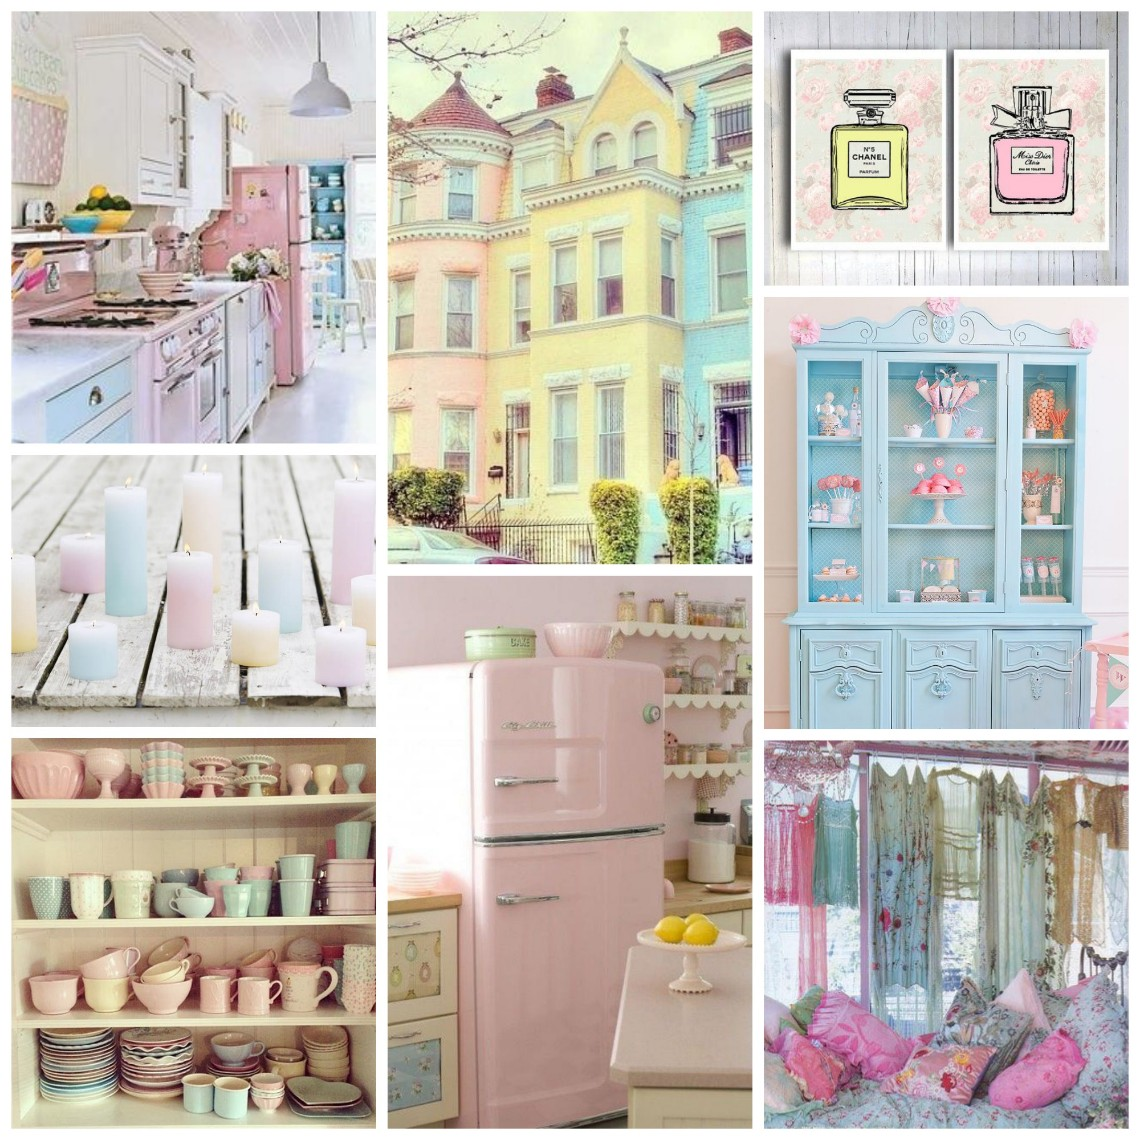 Trend Alert Pastel Trend In Home Decor home decor Trend Alert: Pastel Trend In Home Decor Trend Alert Pastel Trend In Home Decor 8